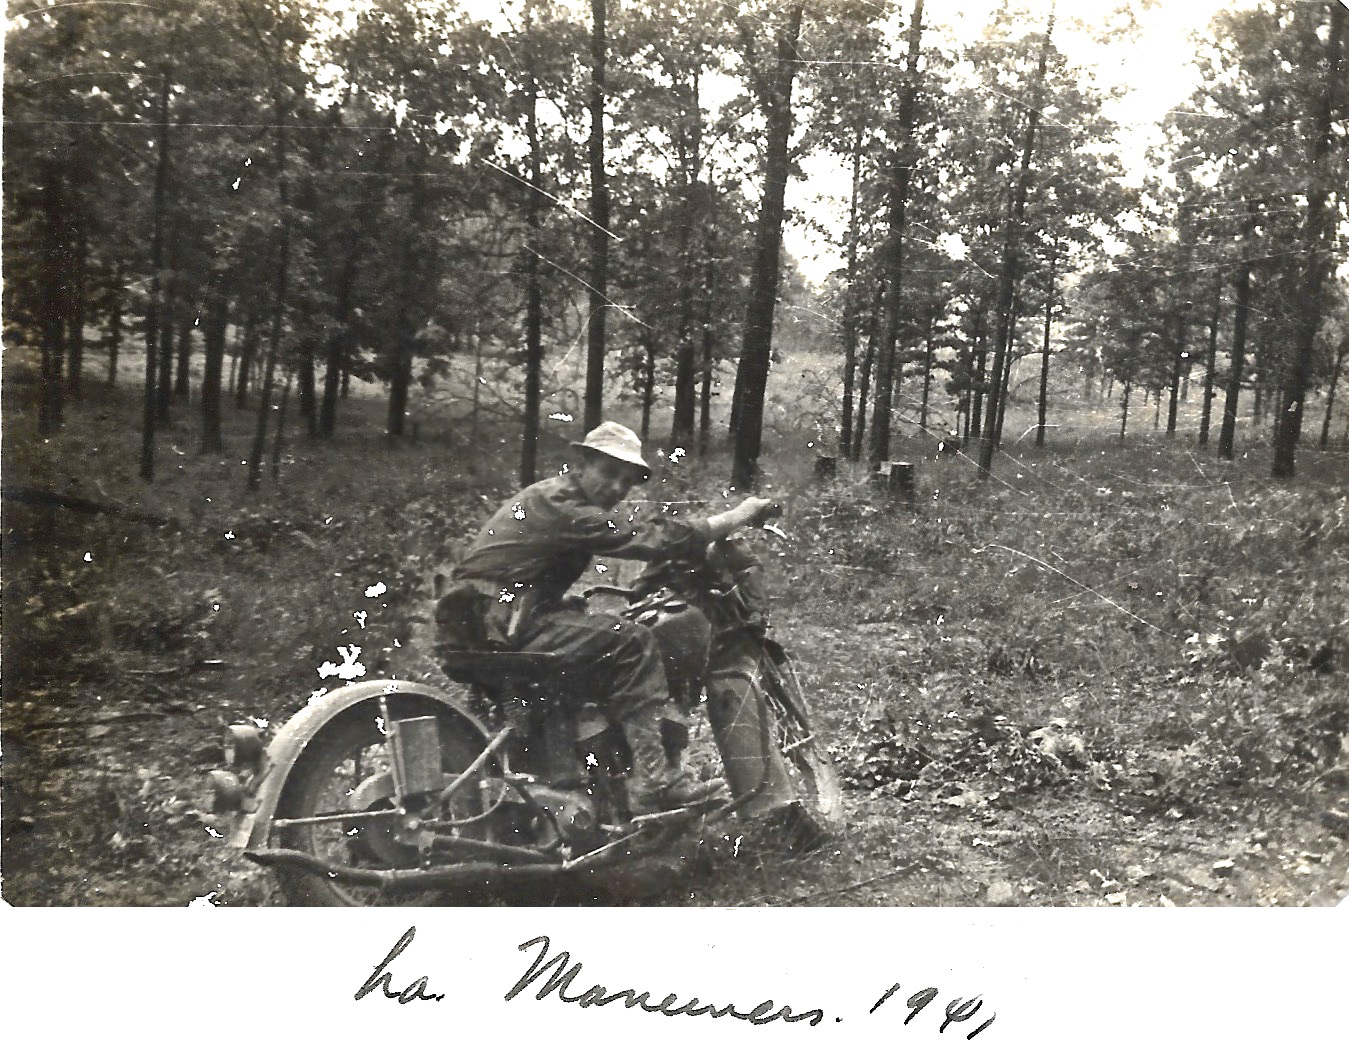 1941 Louisiana Maneuvers. Unknown person on motorcycle